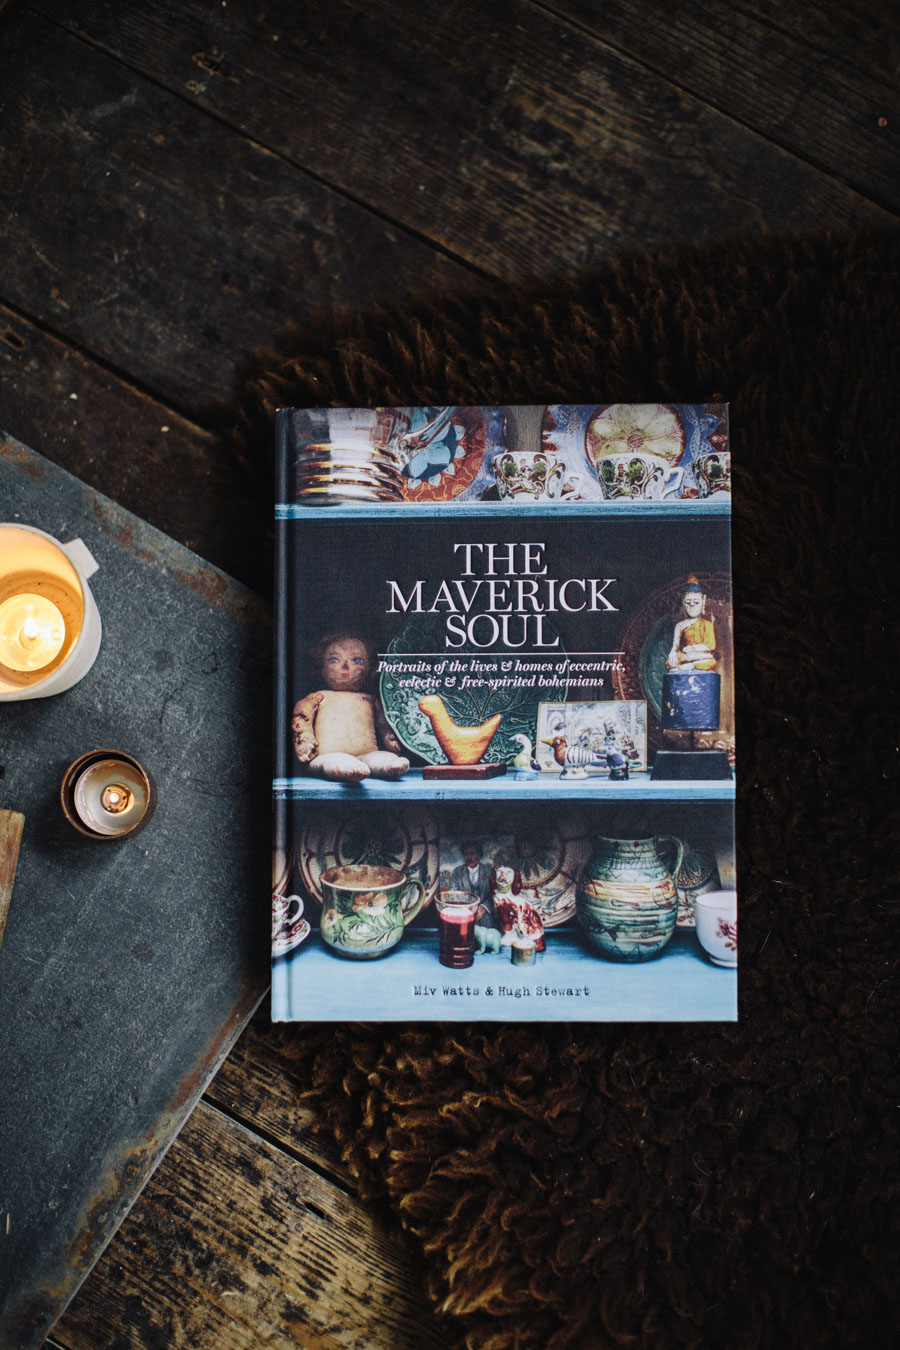 The Maverick Soul by Miv Watts & Hugh Stewart